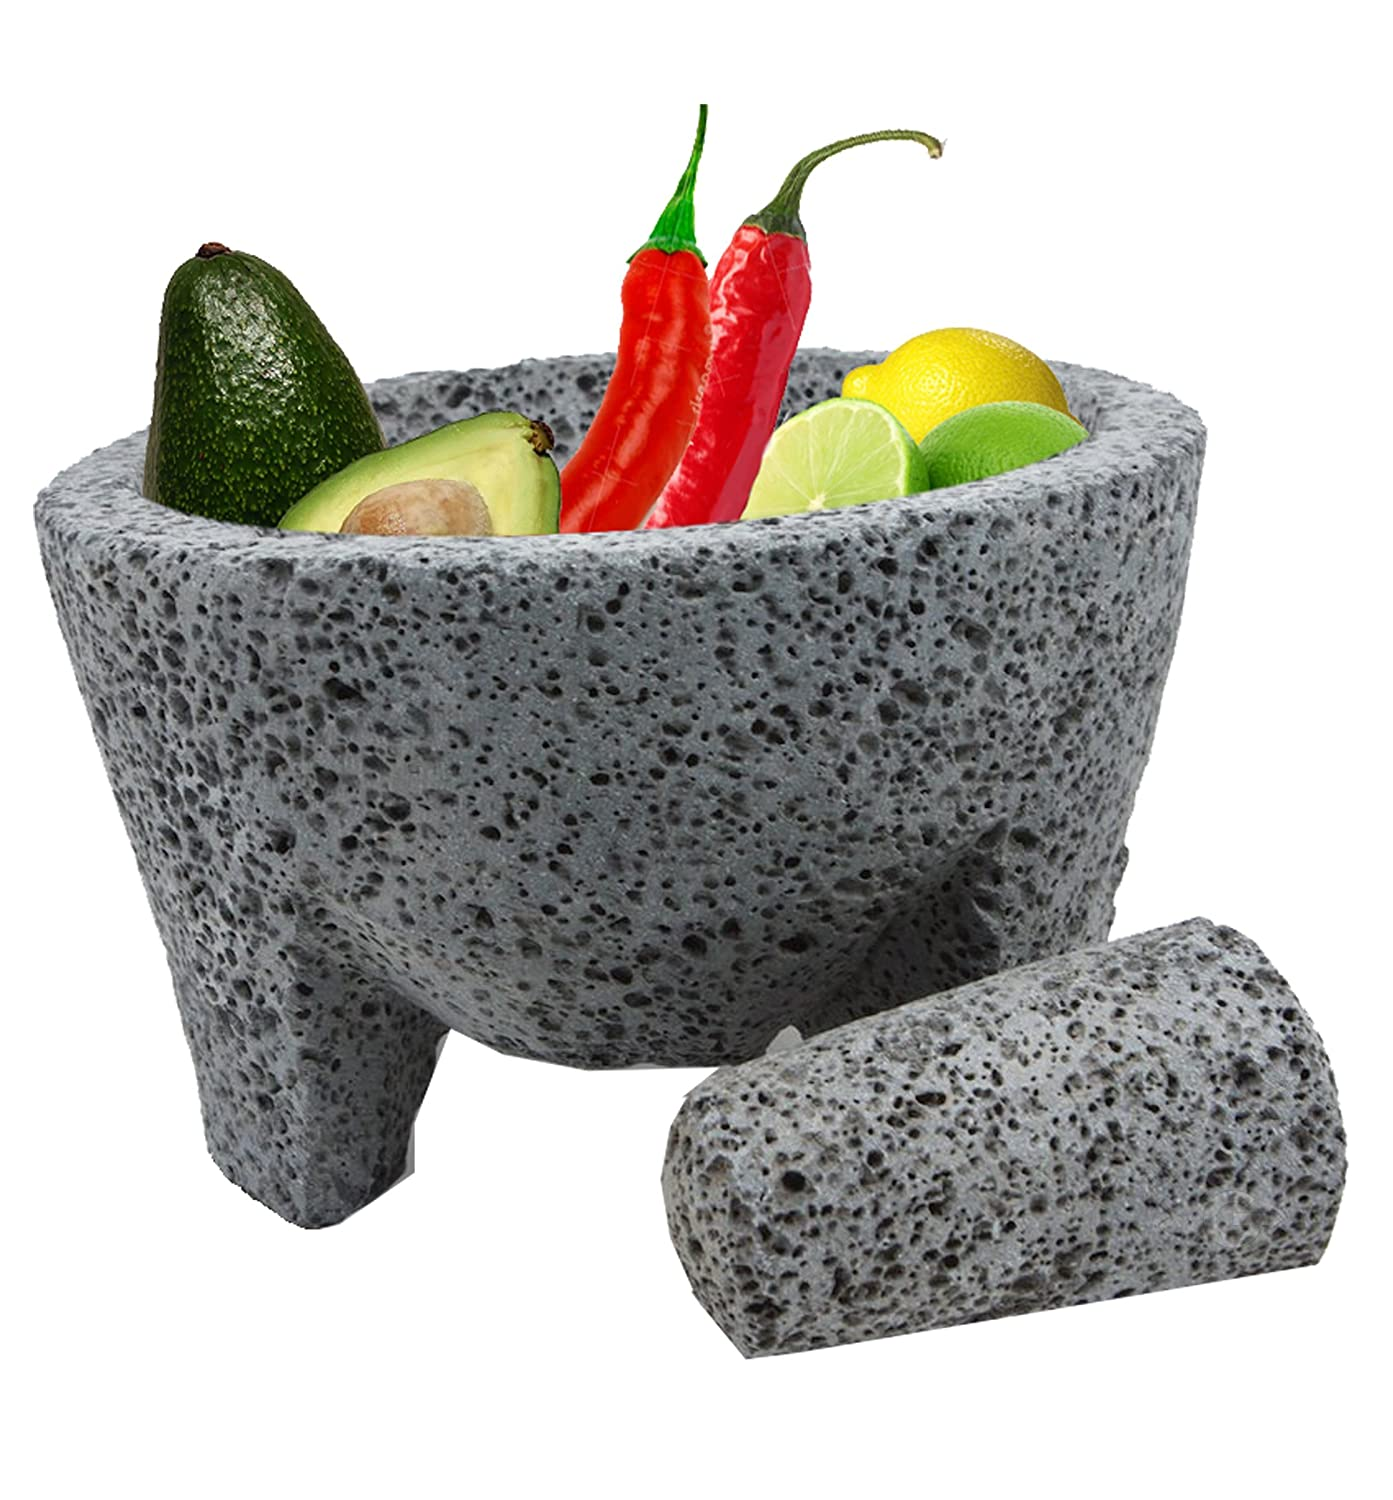 TLP Molcajete authentic Handmade Mexican Mortar and Pestle 8.5